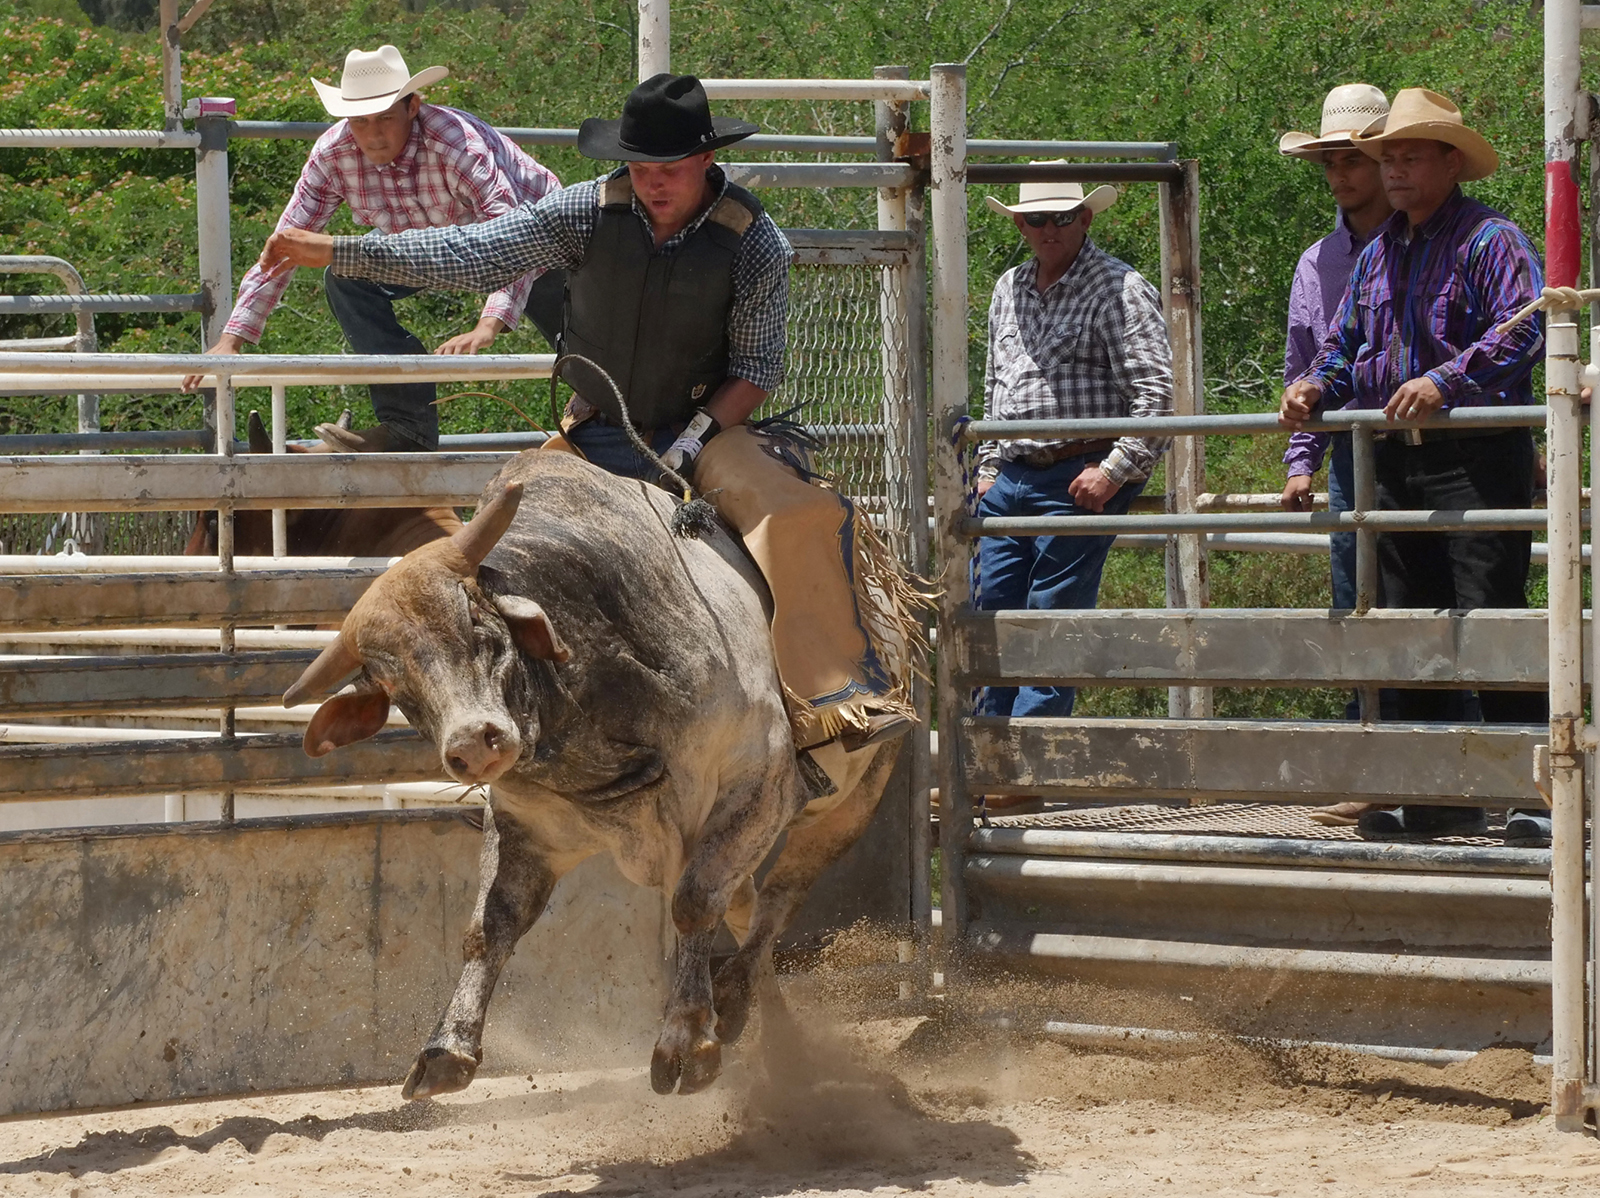 <p>A rider and a bull enter the arena. To receive a score, riders must stay atop the bulls for eight full seconds while holding on with only one hand and without touching the bull or themselves with their free hand.</p>